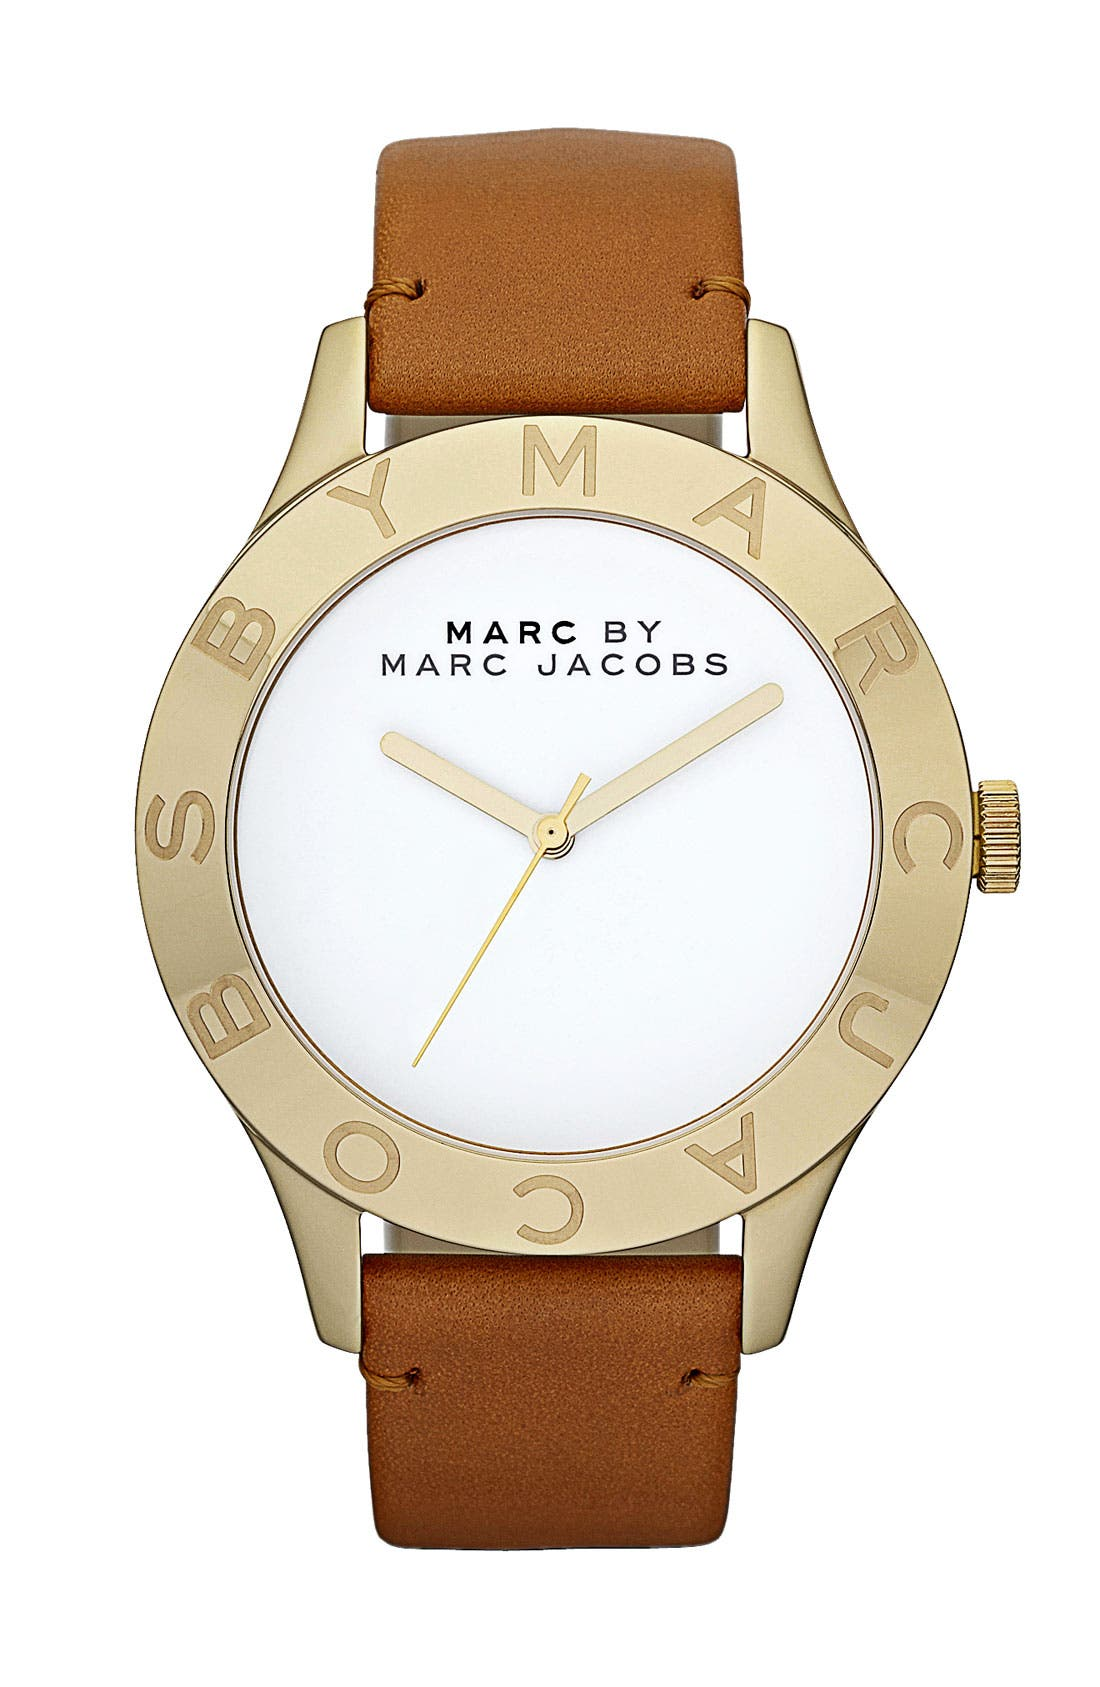 Main Image - MARC JACOBS 'Large Blade' Leather Strap Watch, 40mm